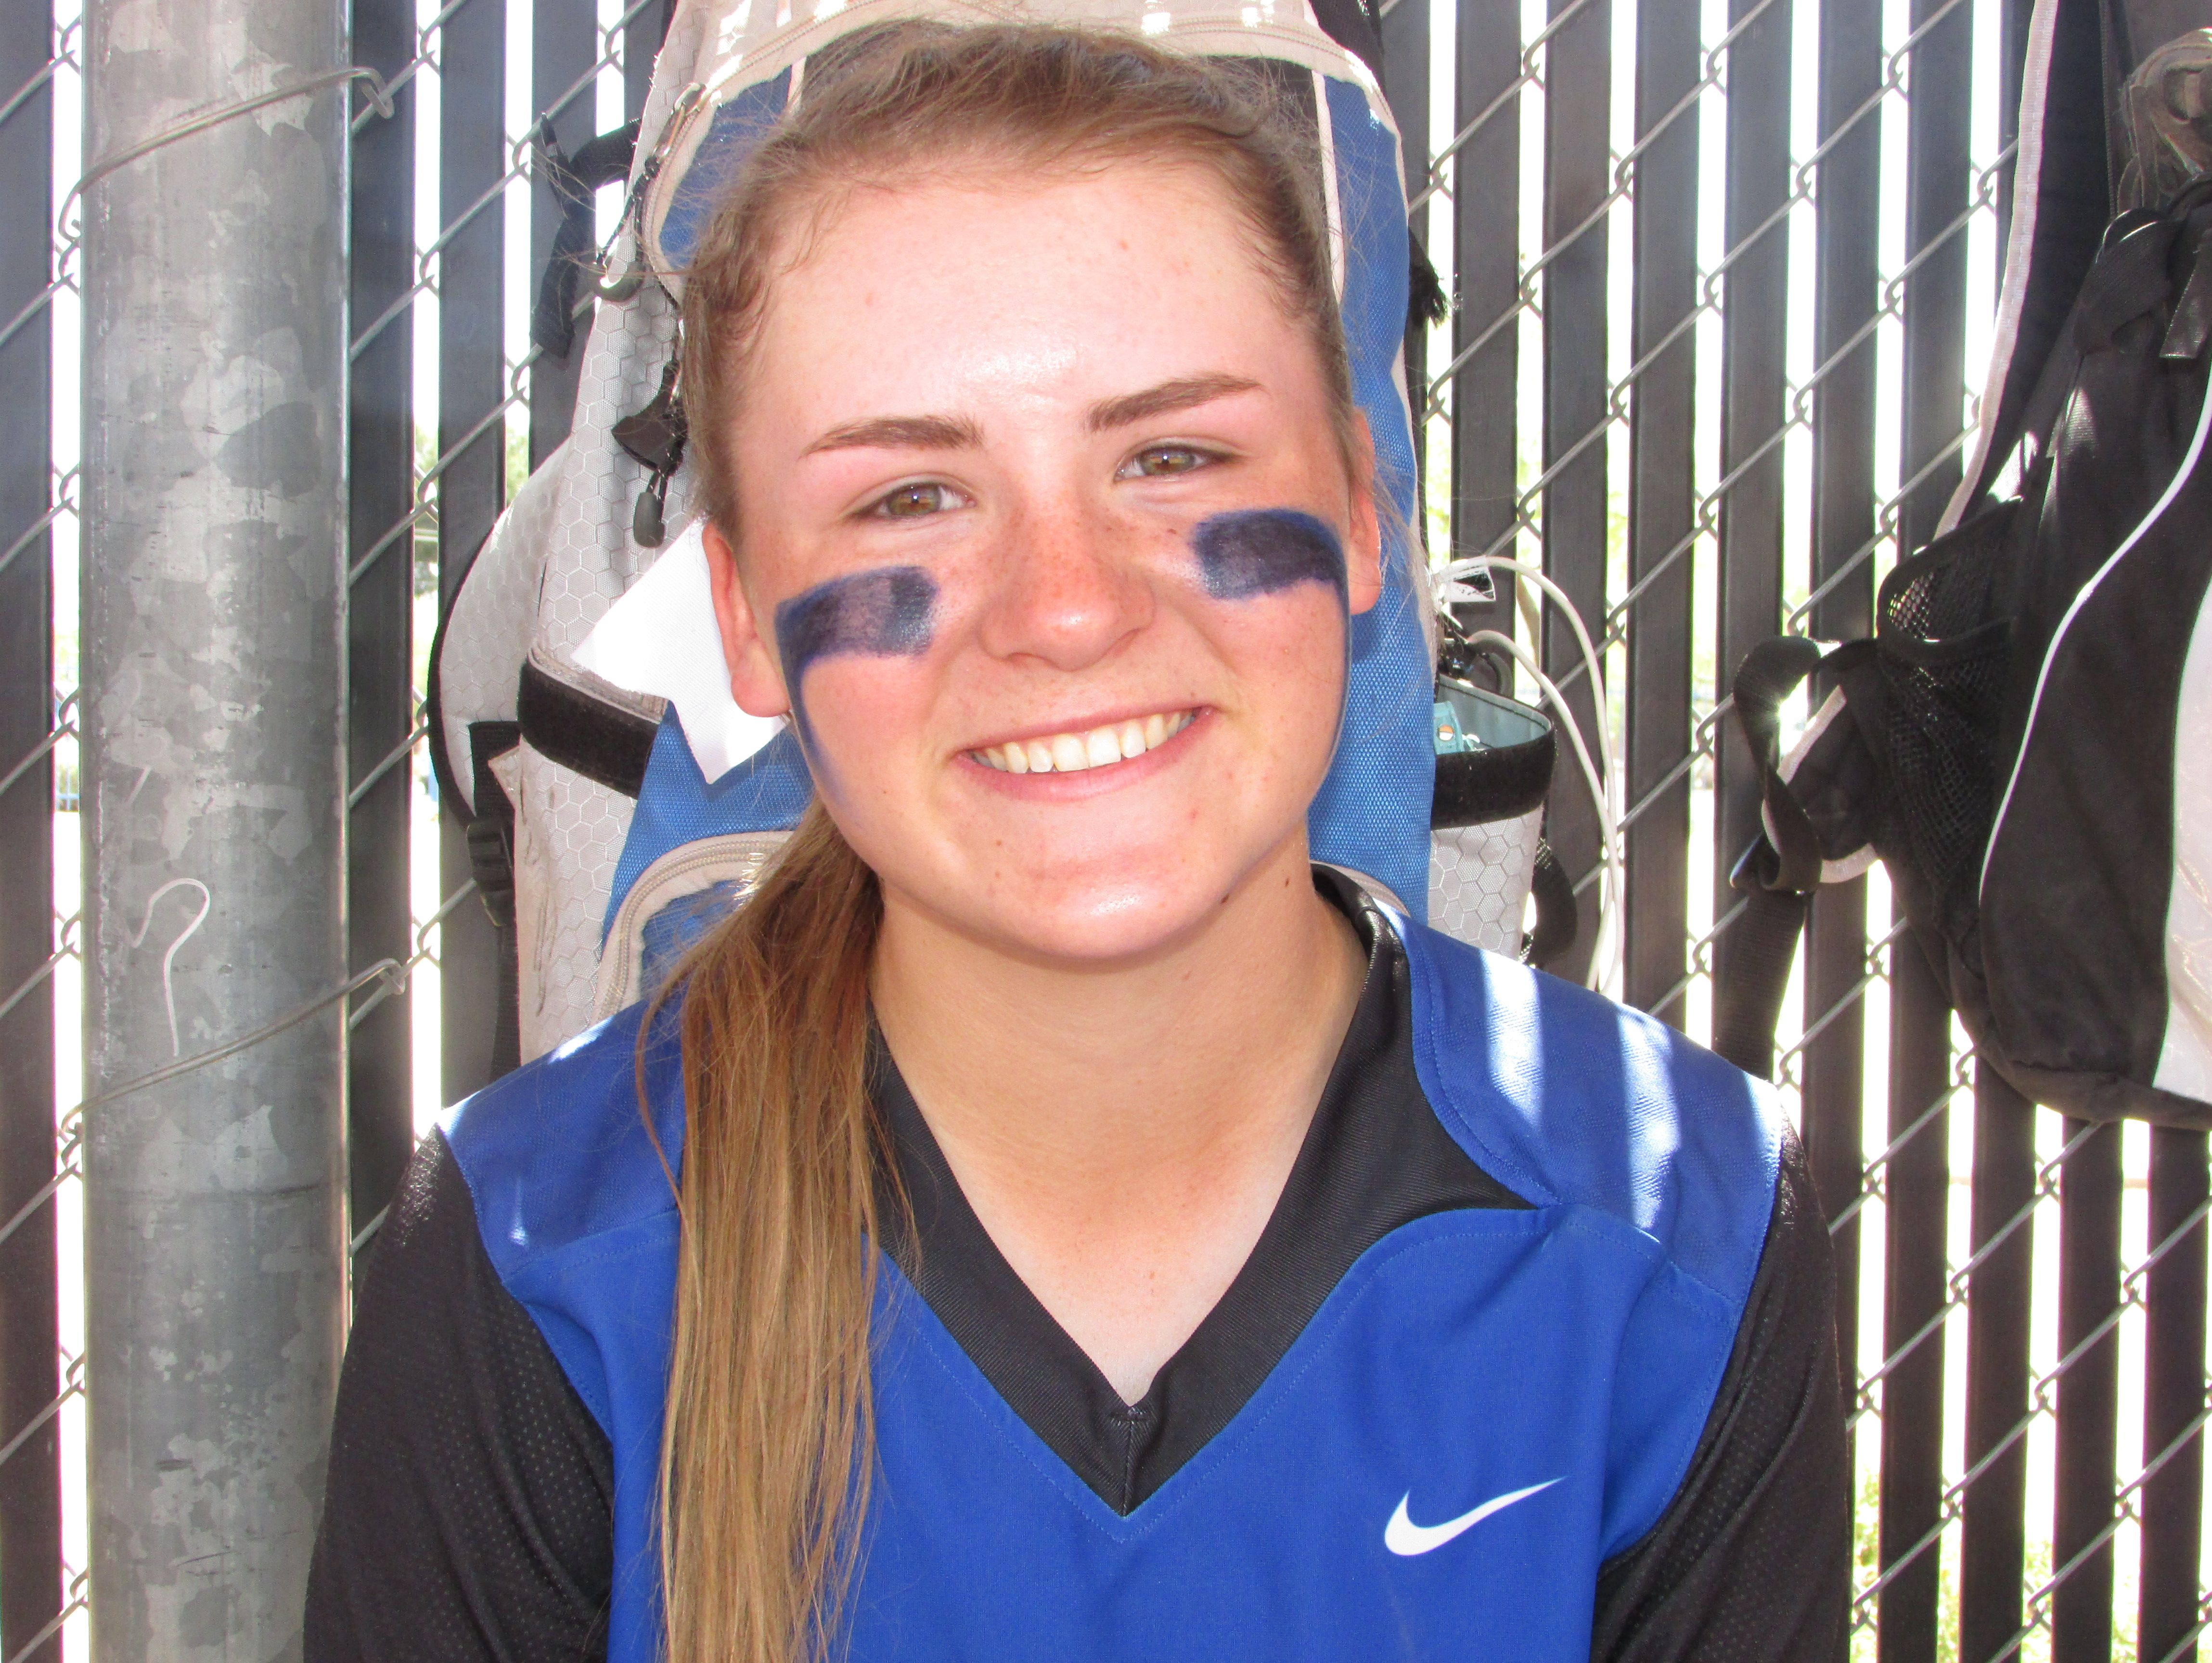 Bethany Loveall, from Bagdad, is azcentral sports' High Achiever of the Week for March 31-April 7.